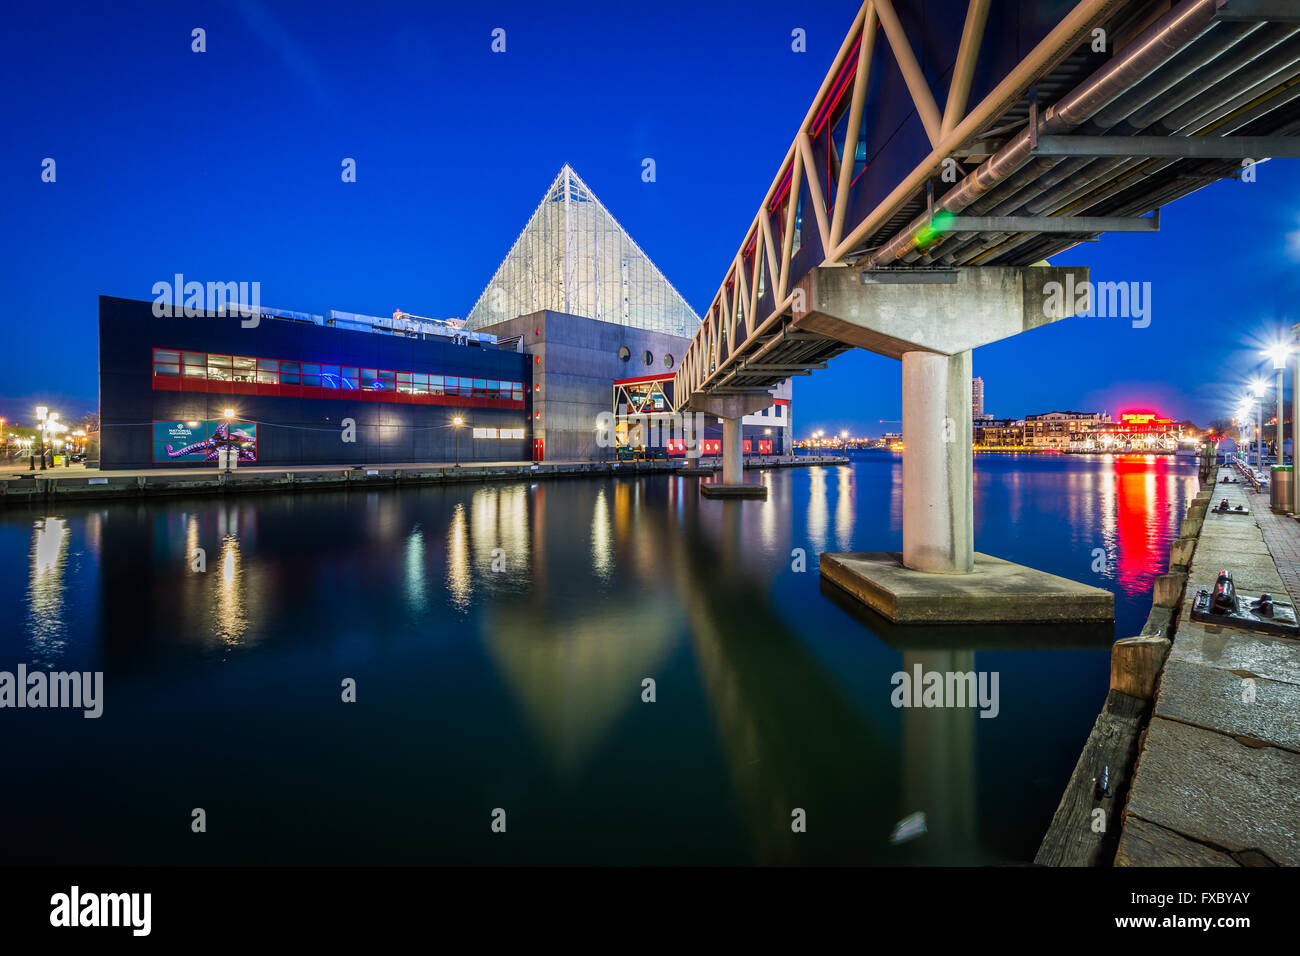 The National Aquarium at night, in Baltimore, Maryland. - Stock Image